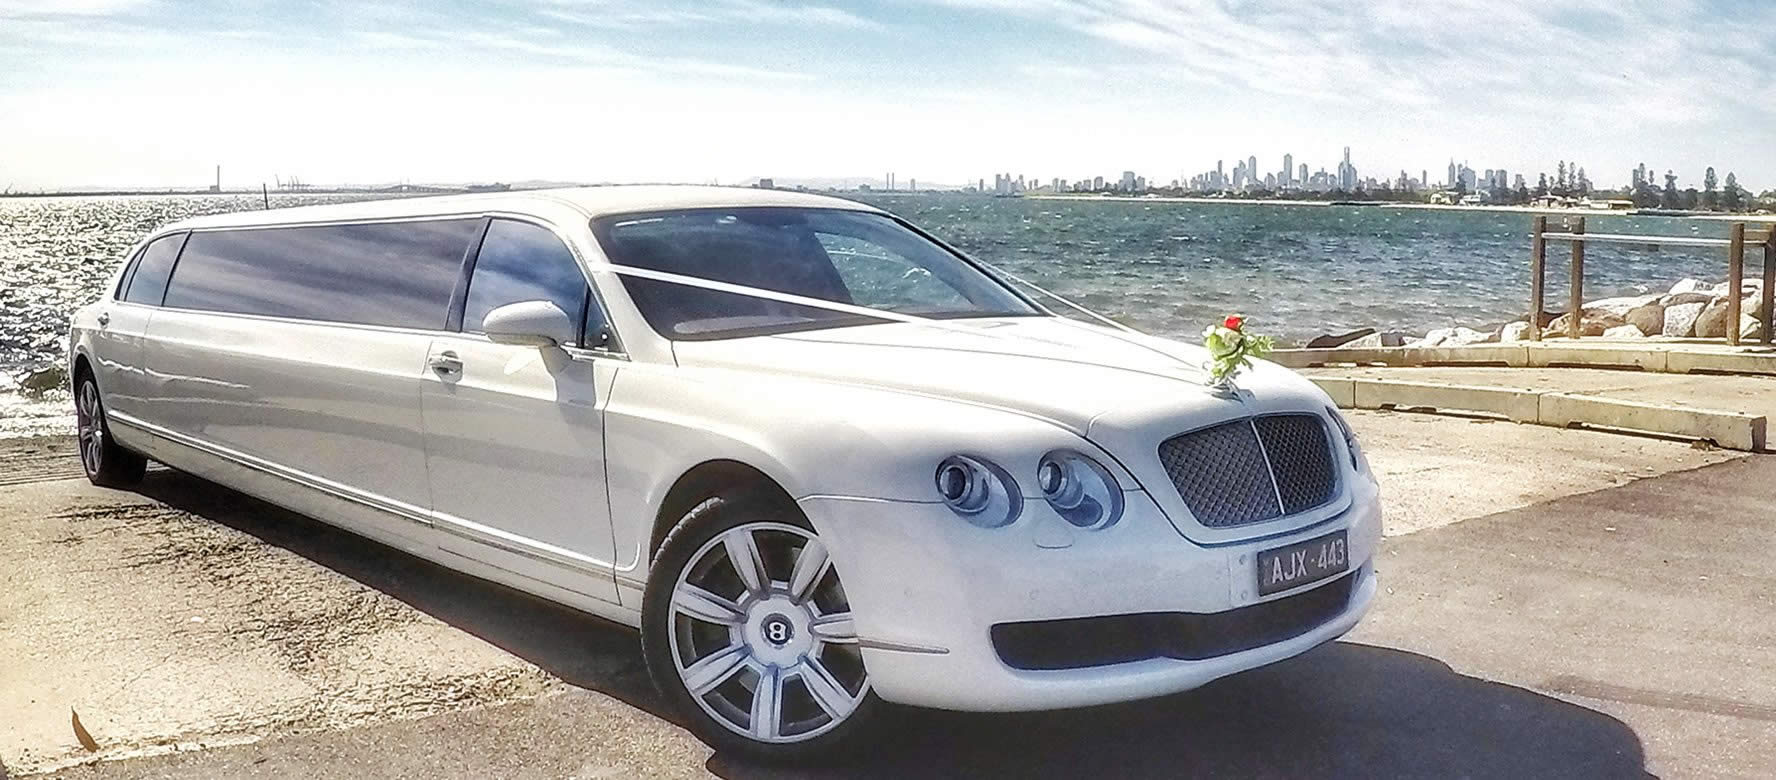 limousine fleet hire limo baby chauffeur chrysler bentley the